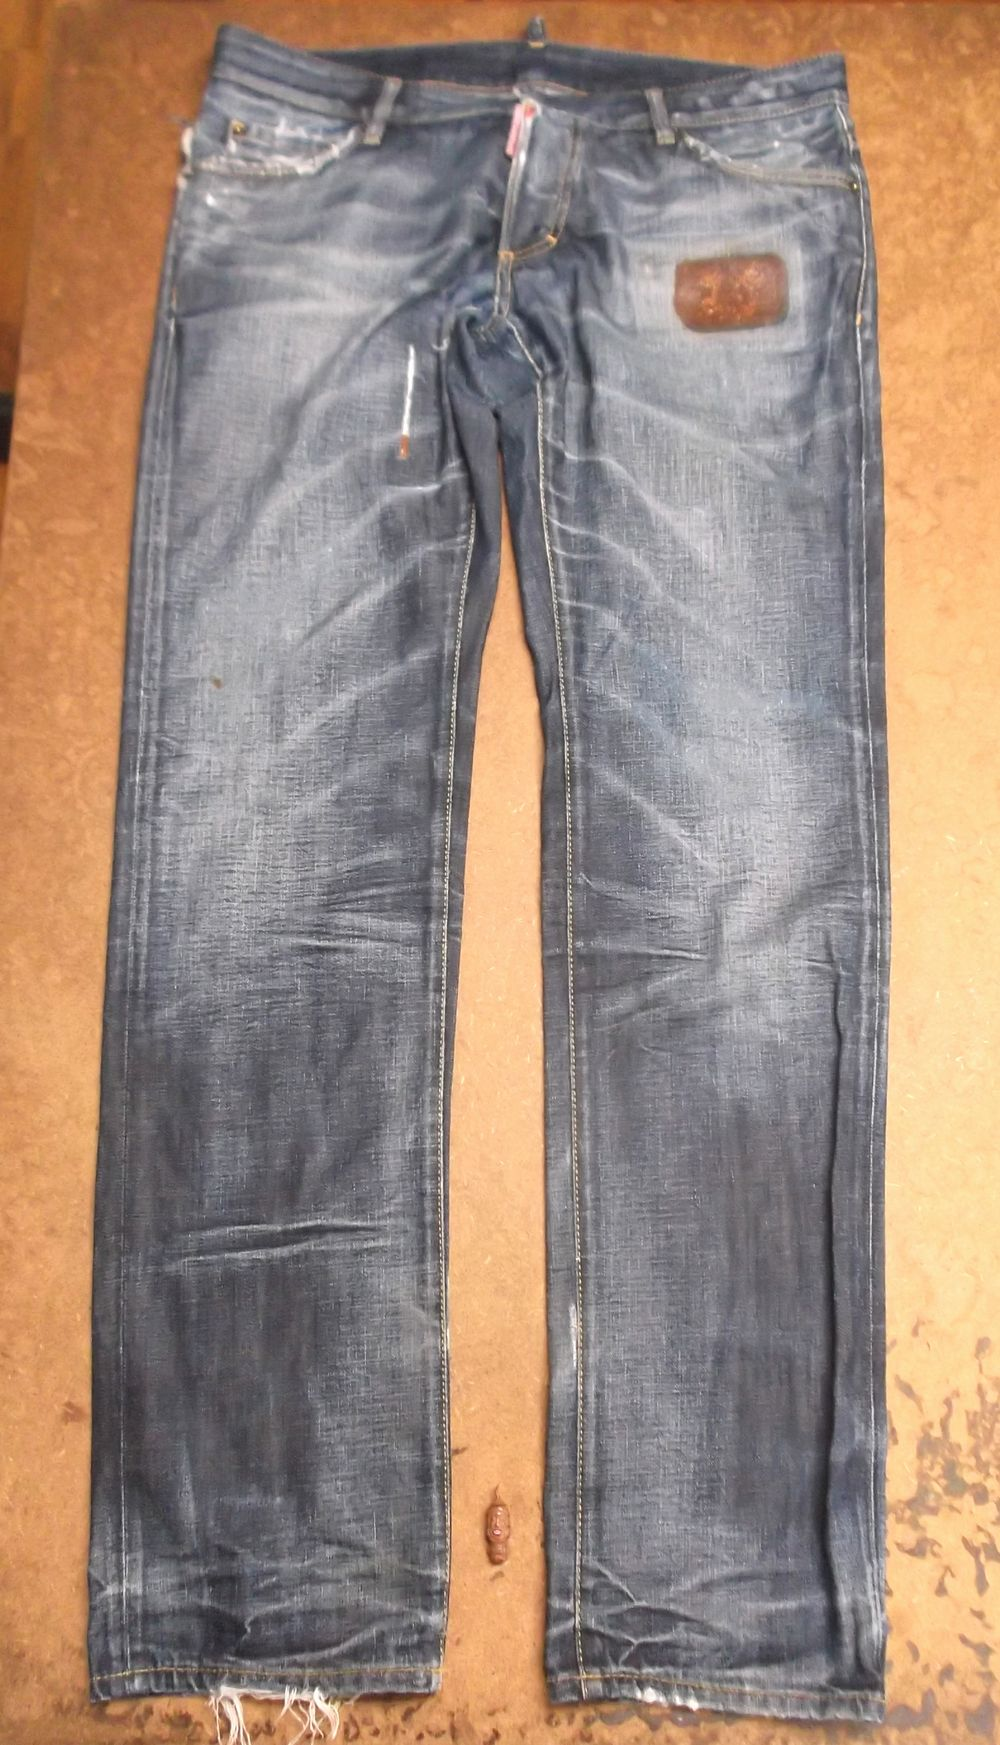 jeans1200